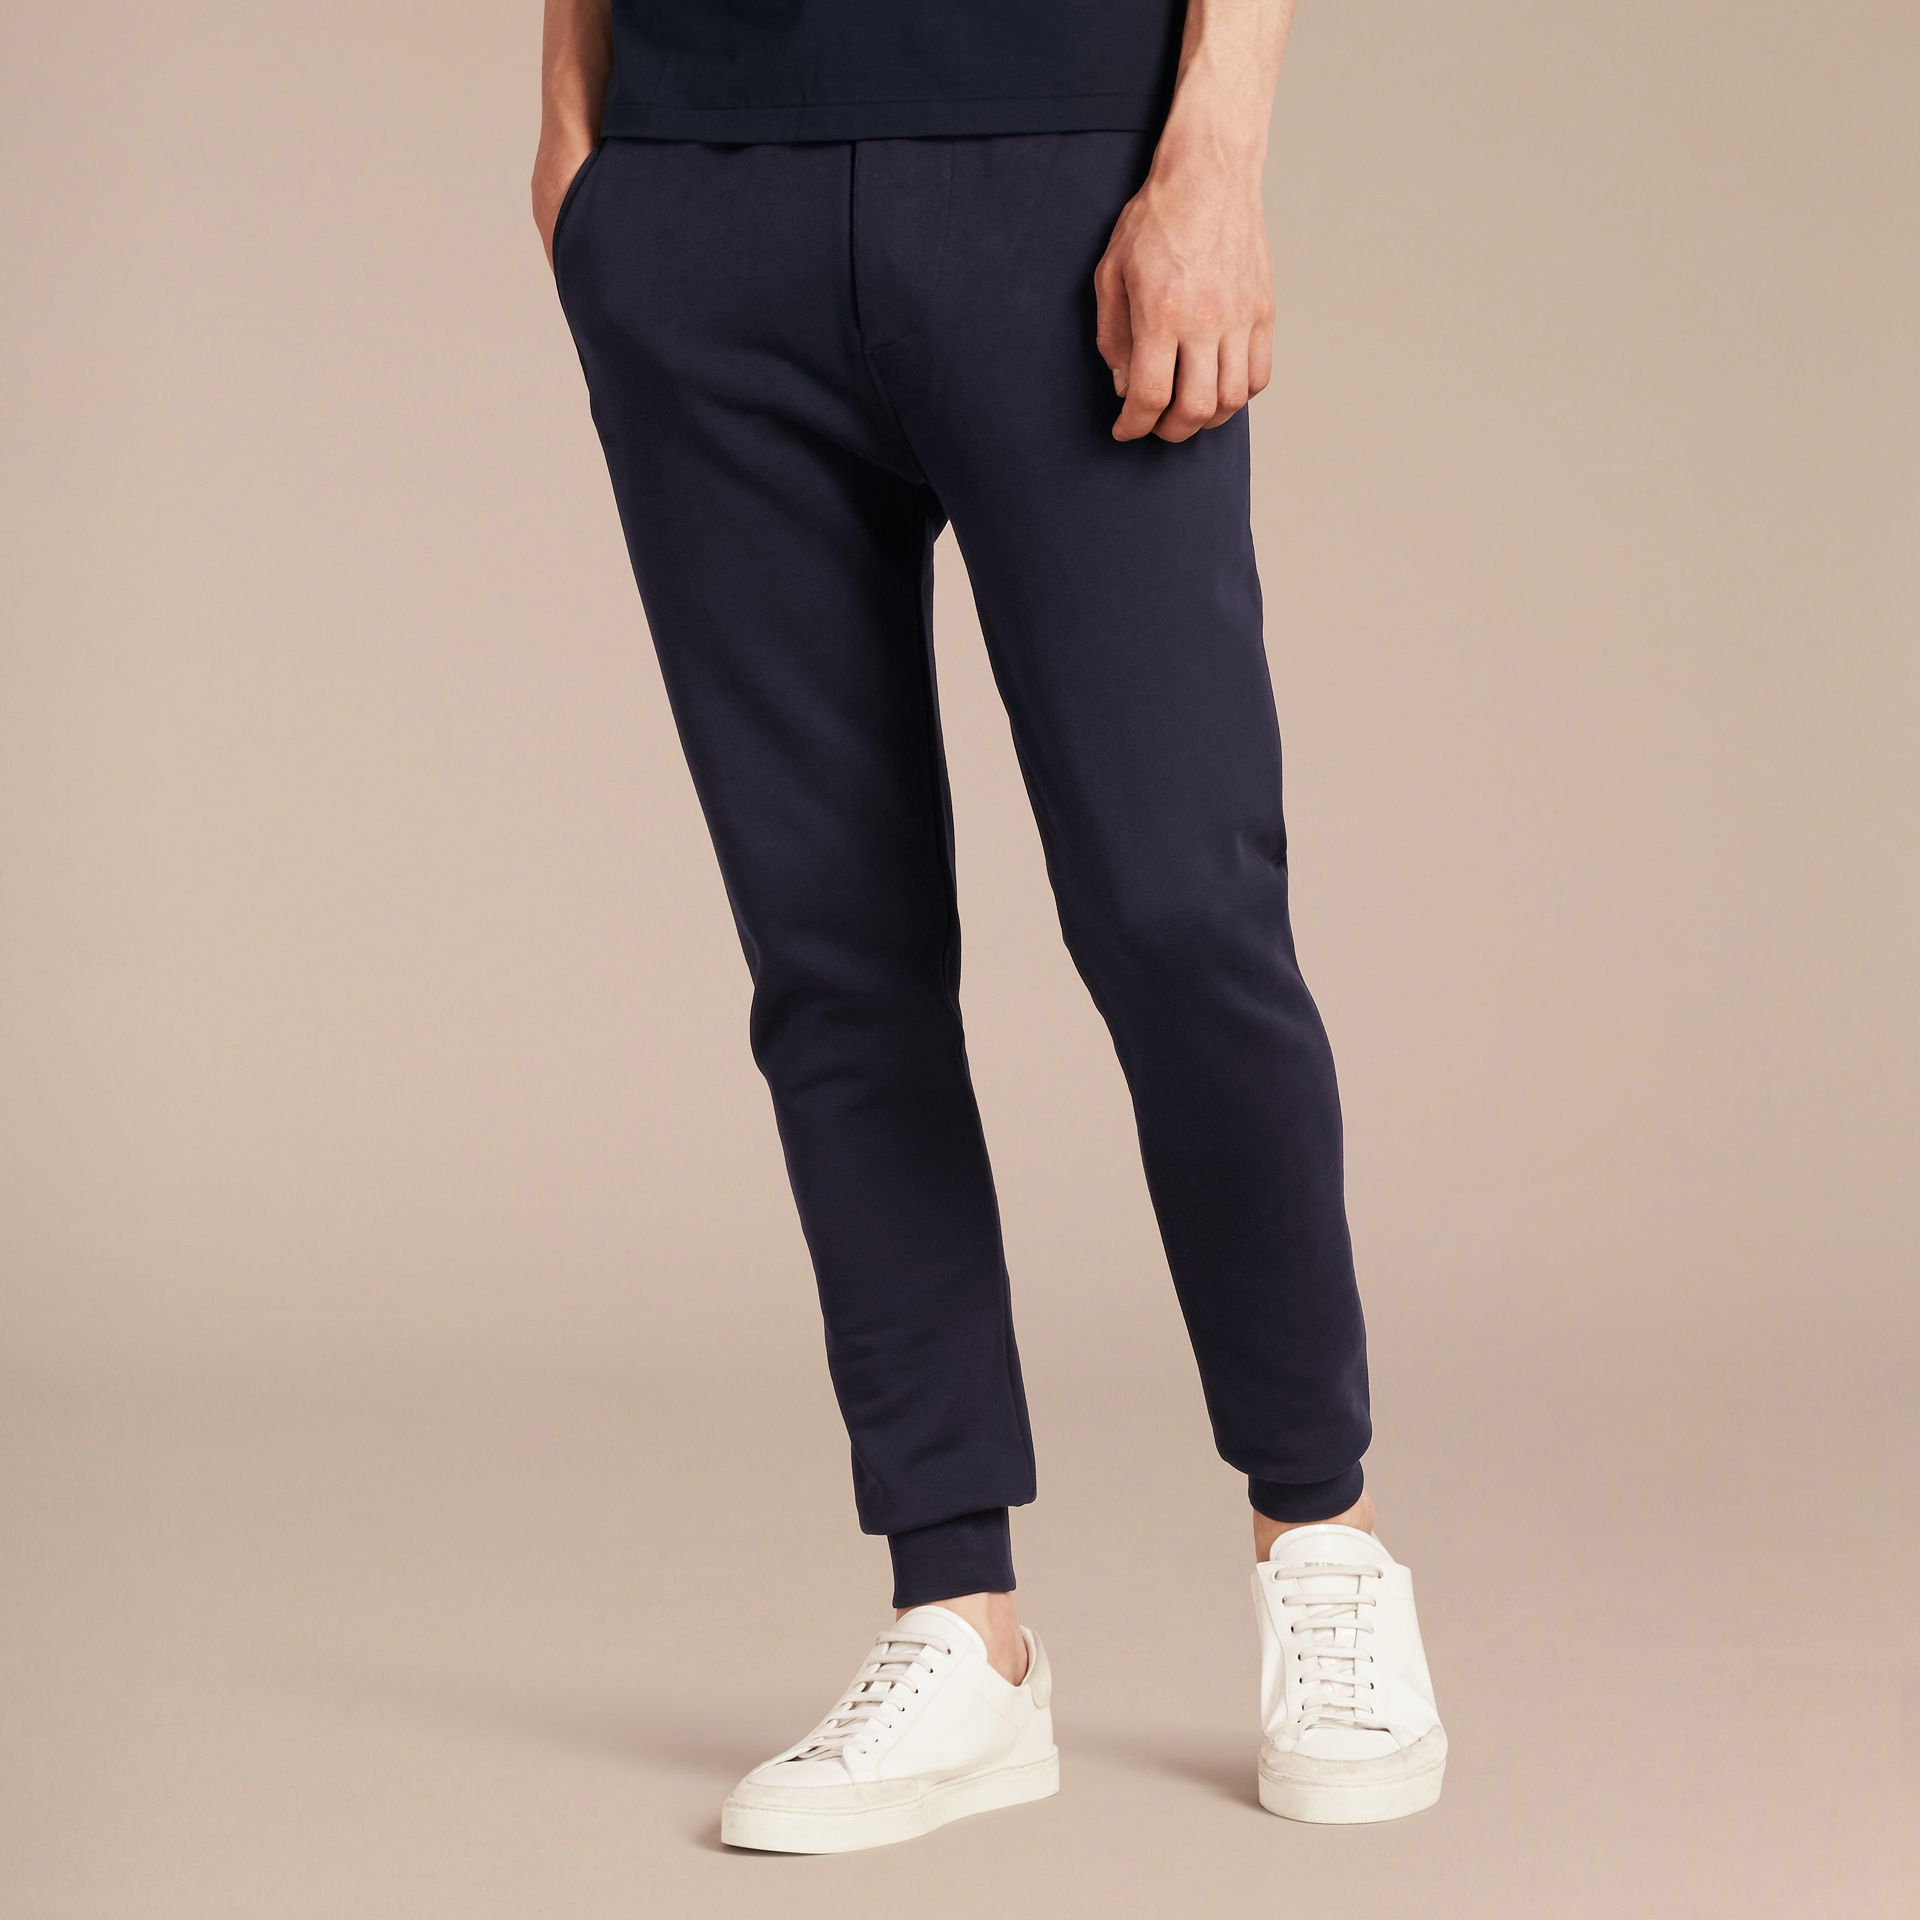 Marine Pantalon de survêtement en coton Marine - photo de la galerie 6